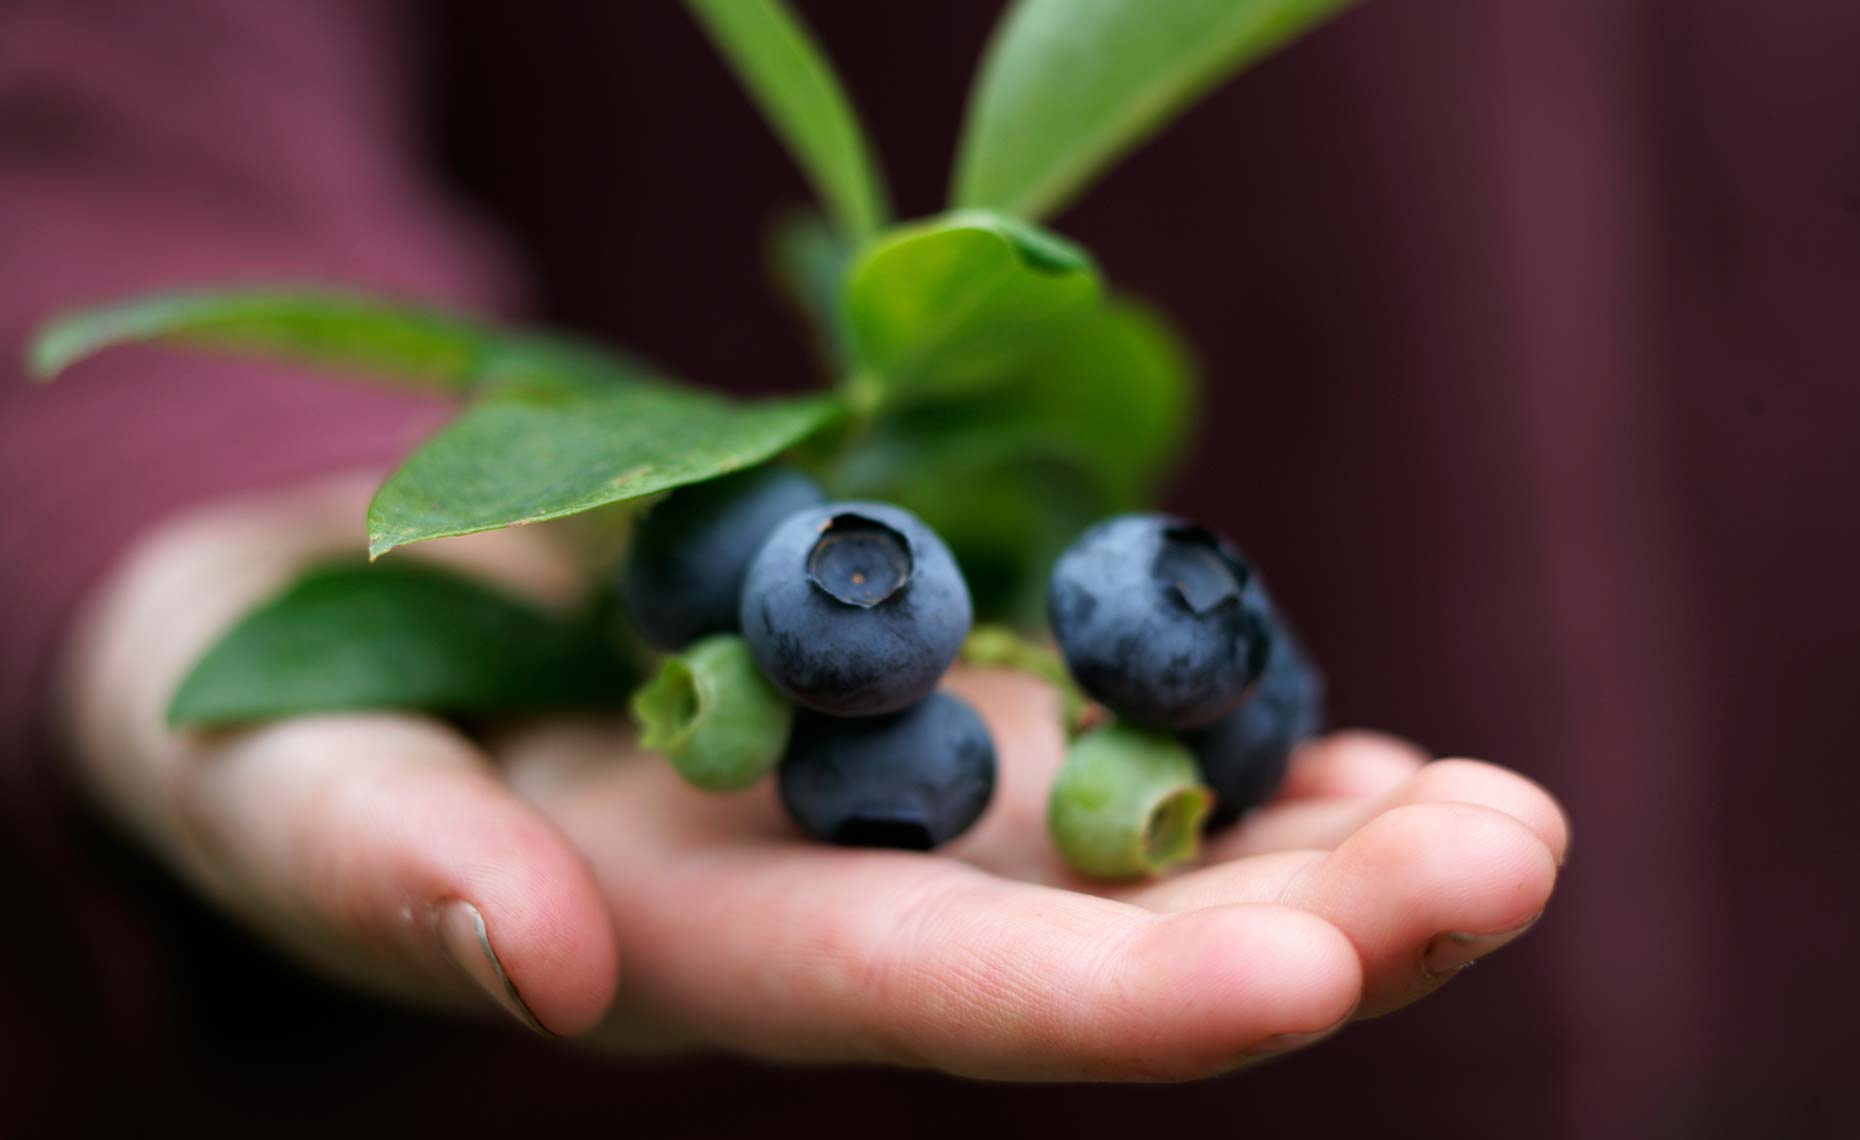 10-16_Nordeck_Hand Blueberries